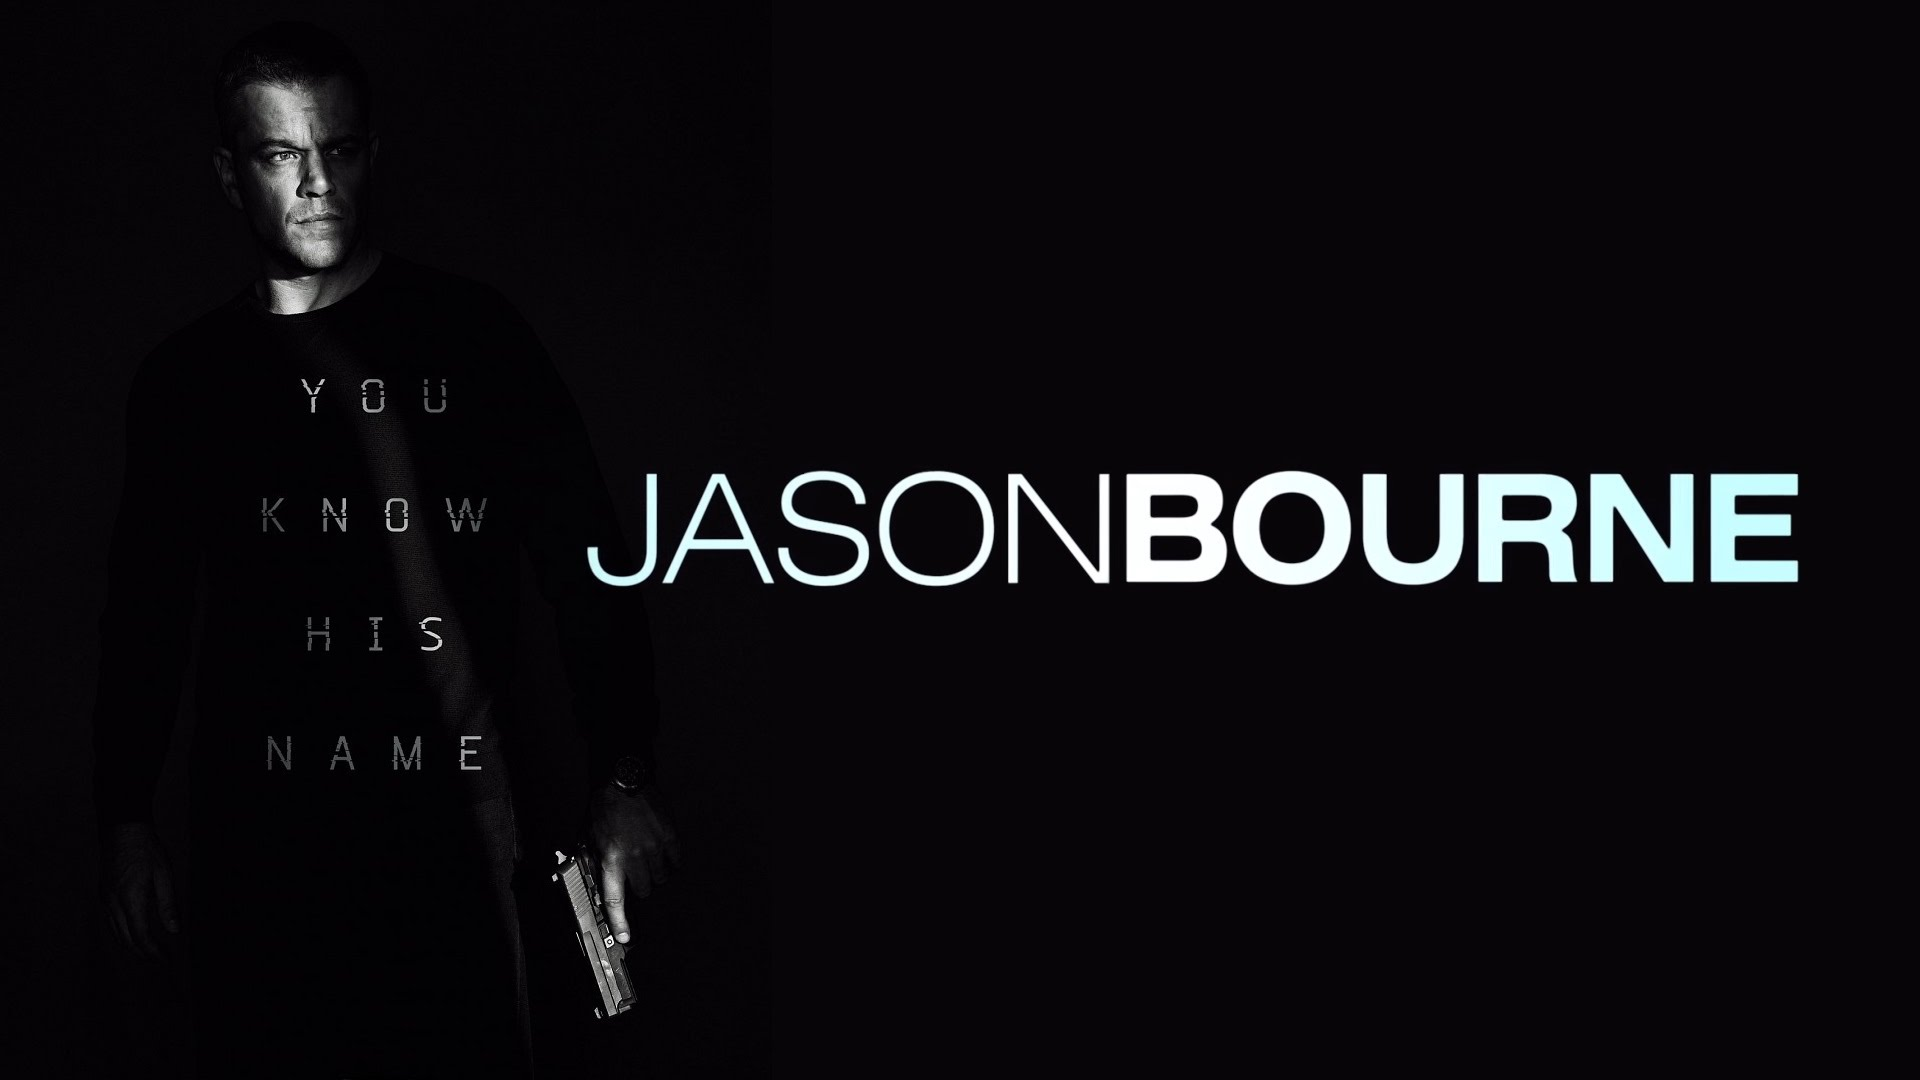 Jason Bourne Desktop wallpaper